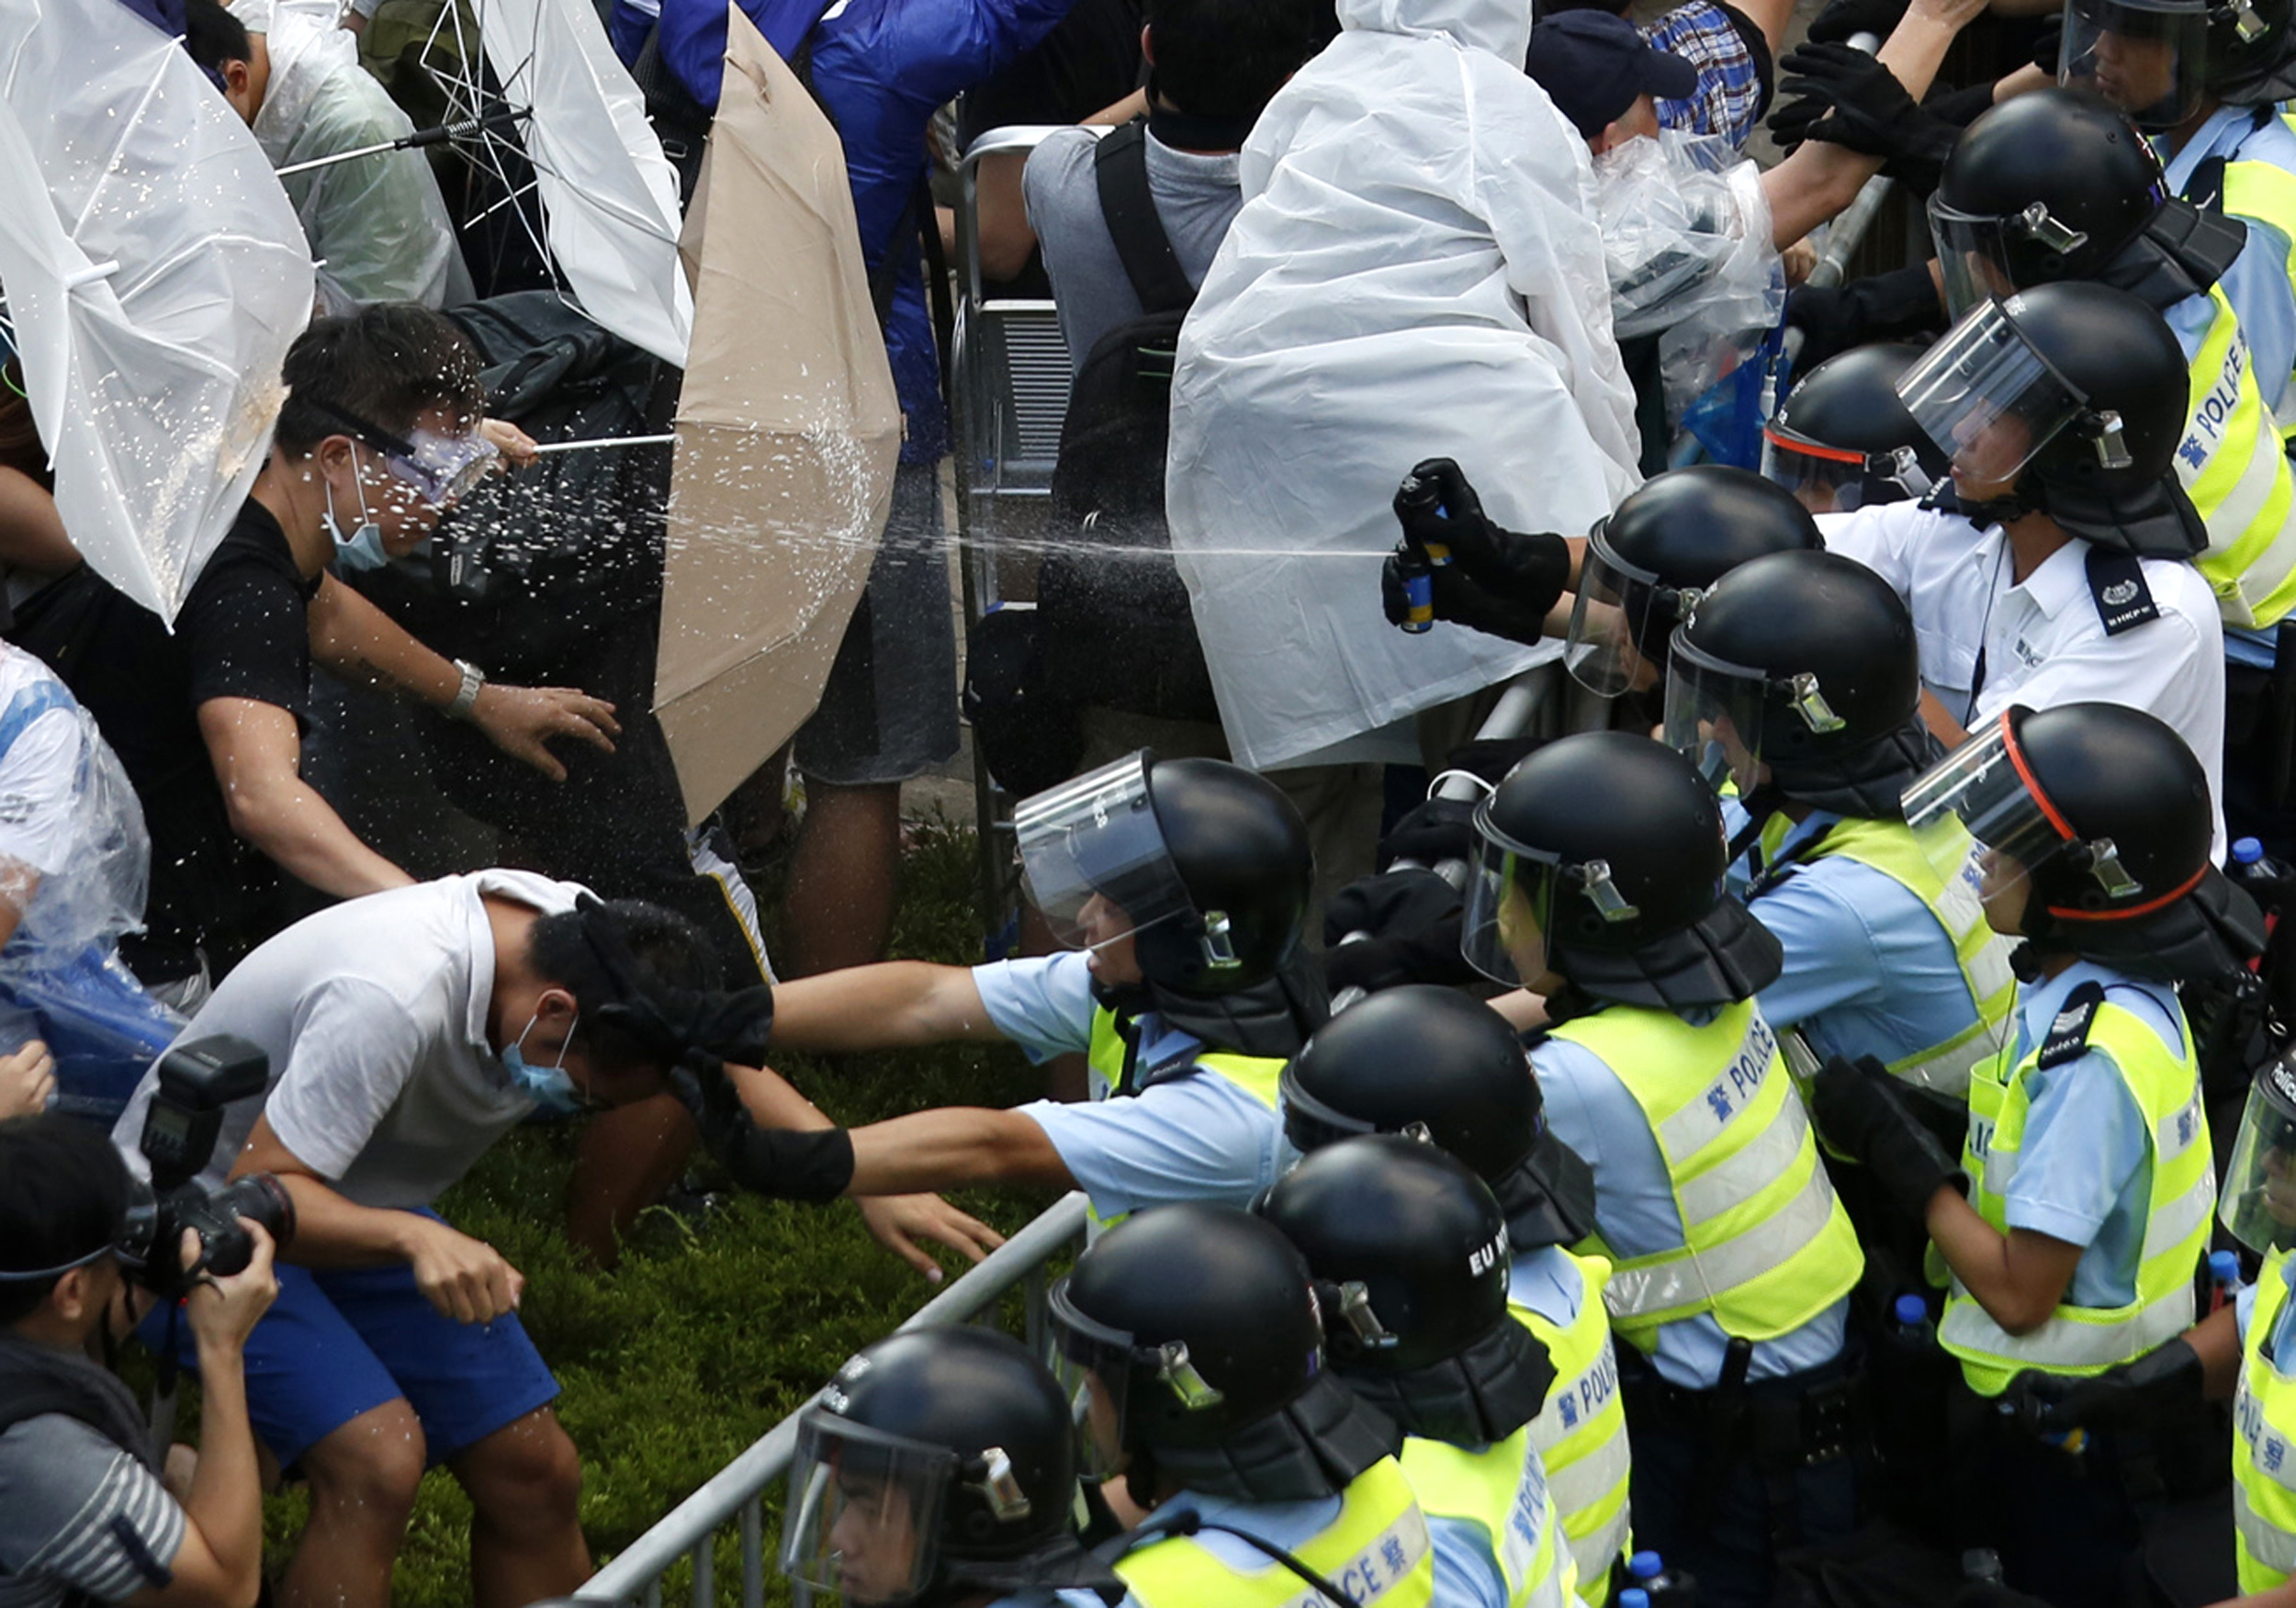 Riot police use pepper spray as they clash with protesters, as tens of thousands of protesters block the main street to the financial district outside the government headquarters in Hong Kong on September 28, 2014.